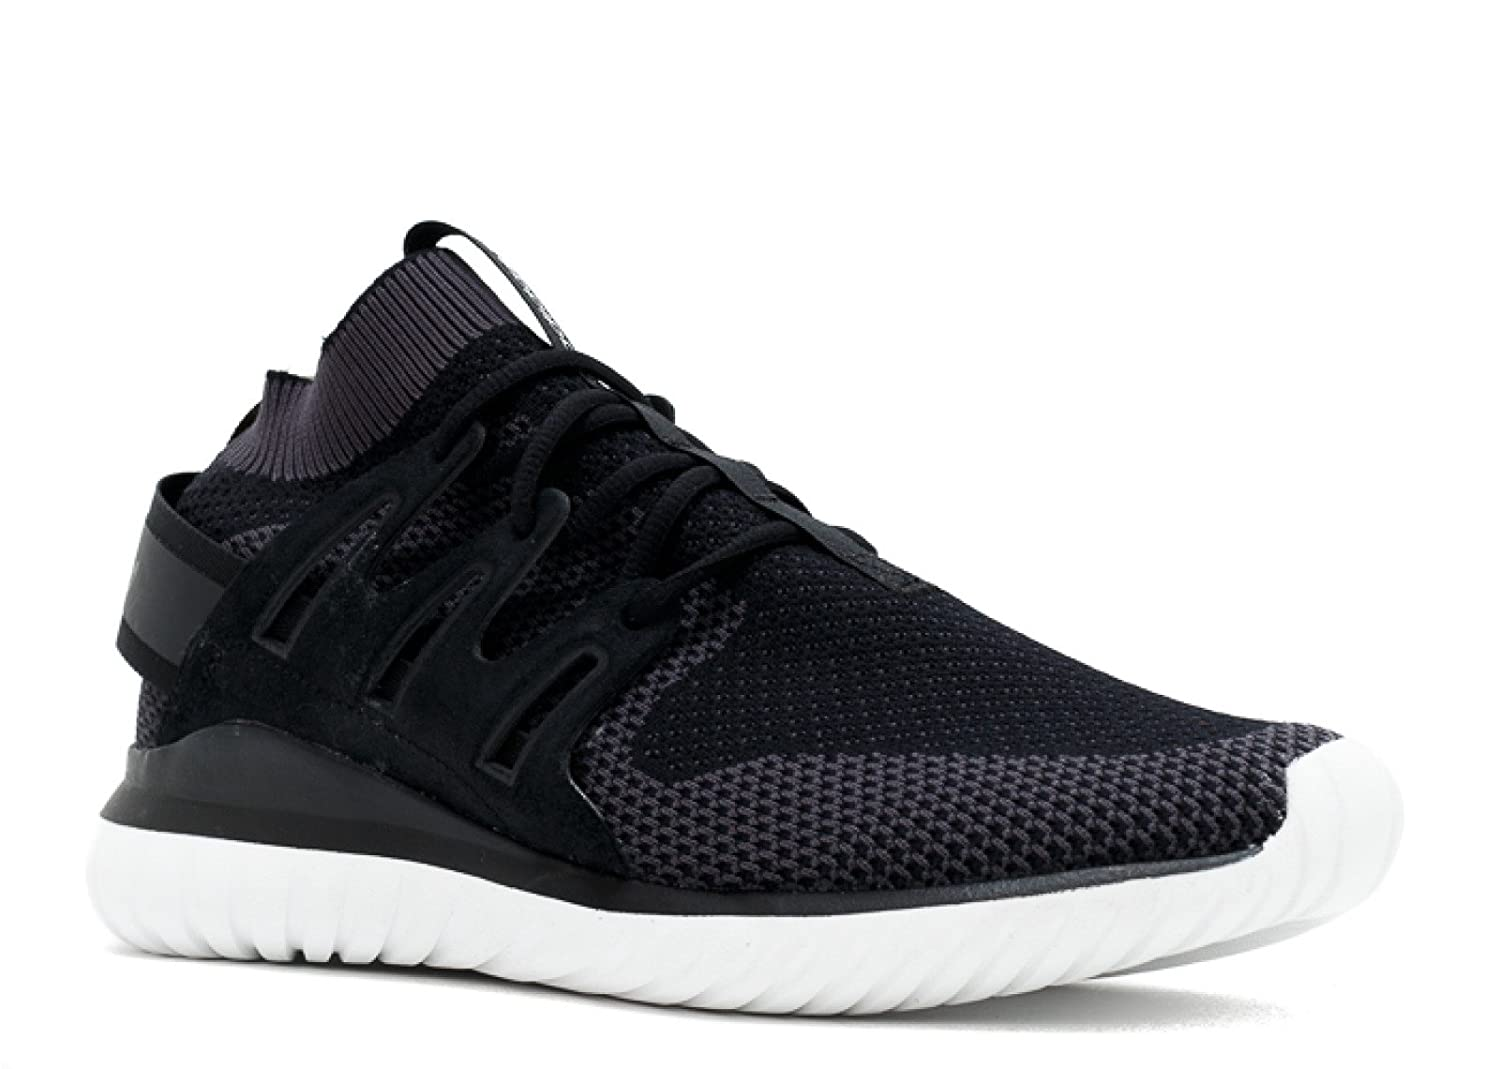 Frisk Amazon.com | Adidas Tubular Nova Primeknit | Shoes PD-78